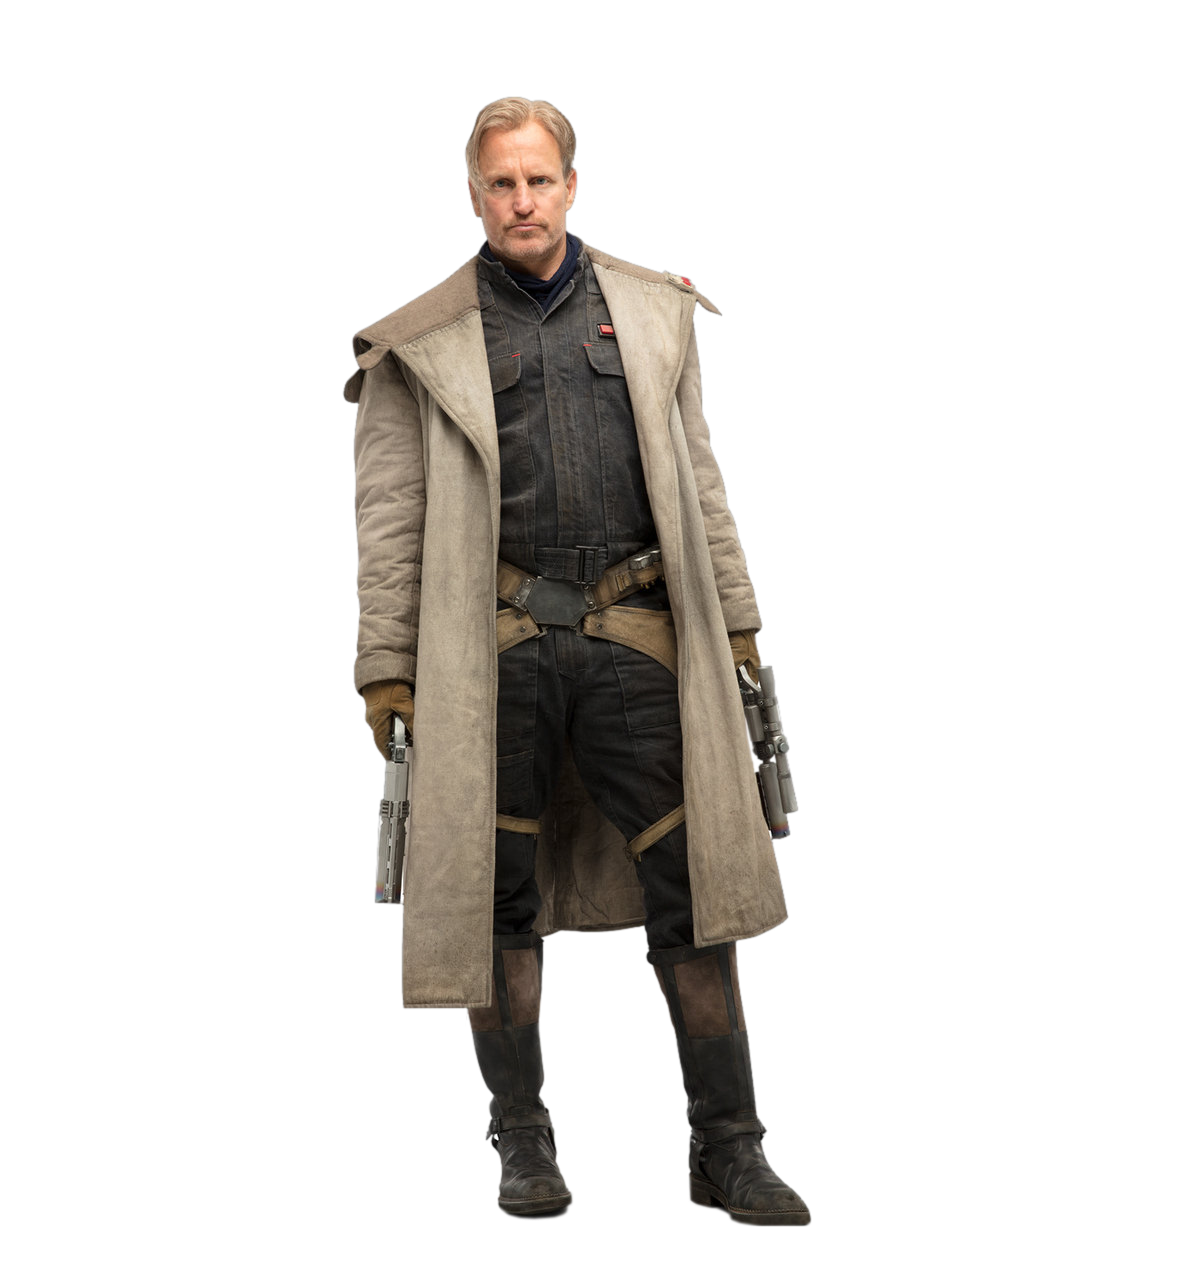 tobias-beckett-solo-a-star-wars-story-cut-out-characters-with-transparent-background-png.png